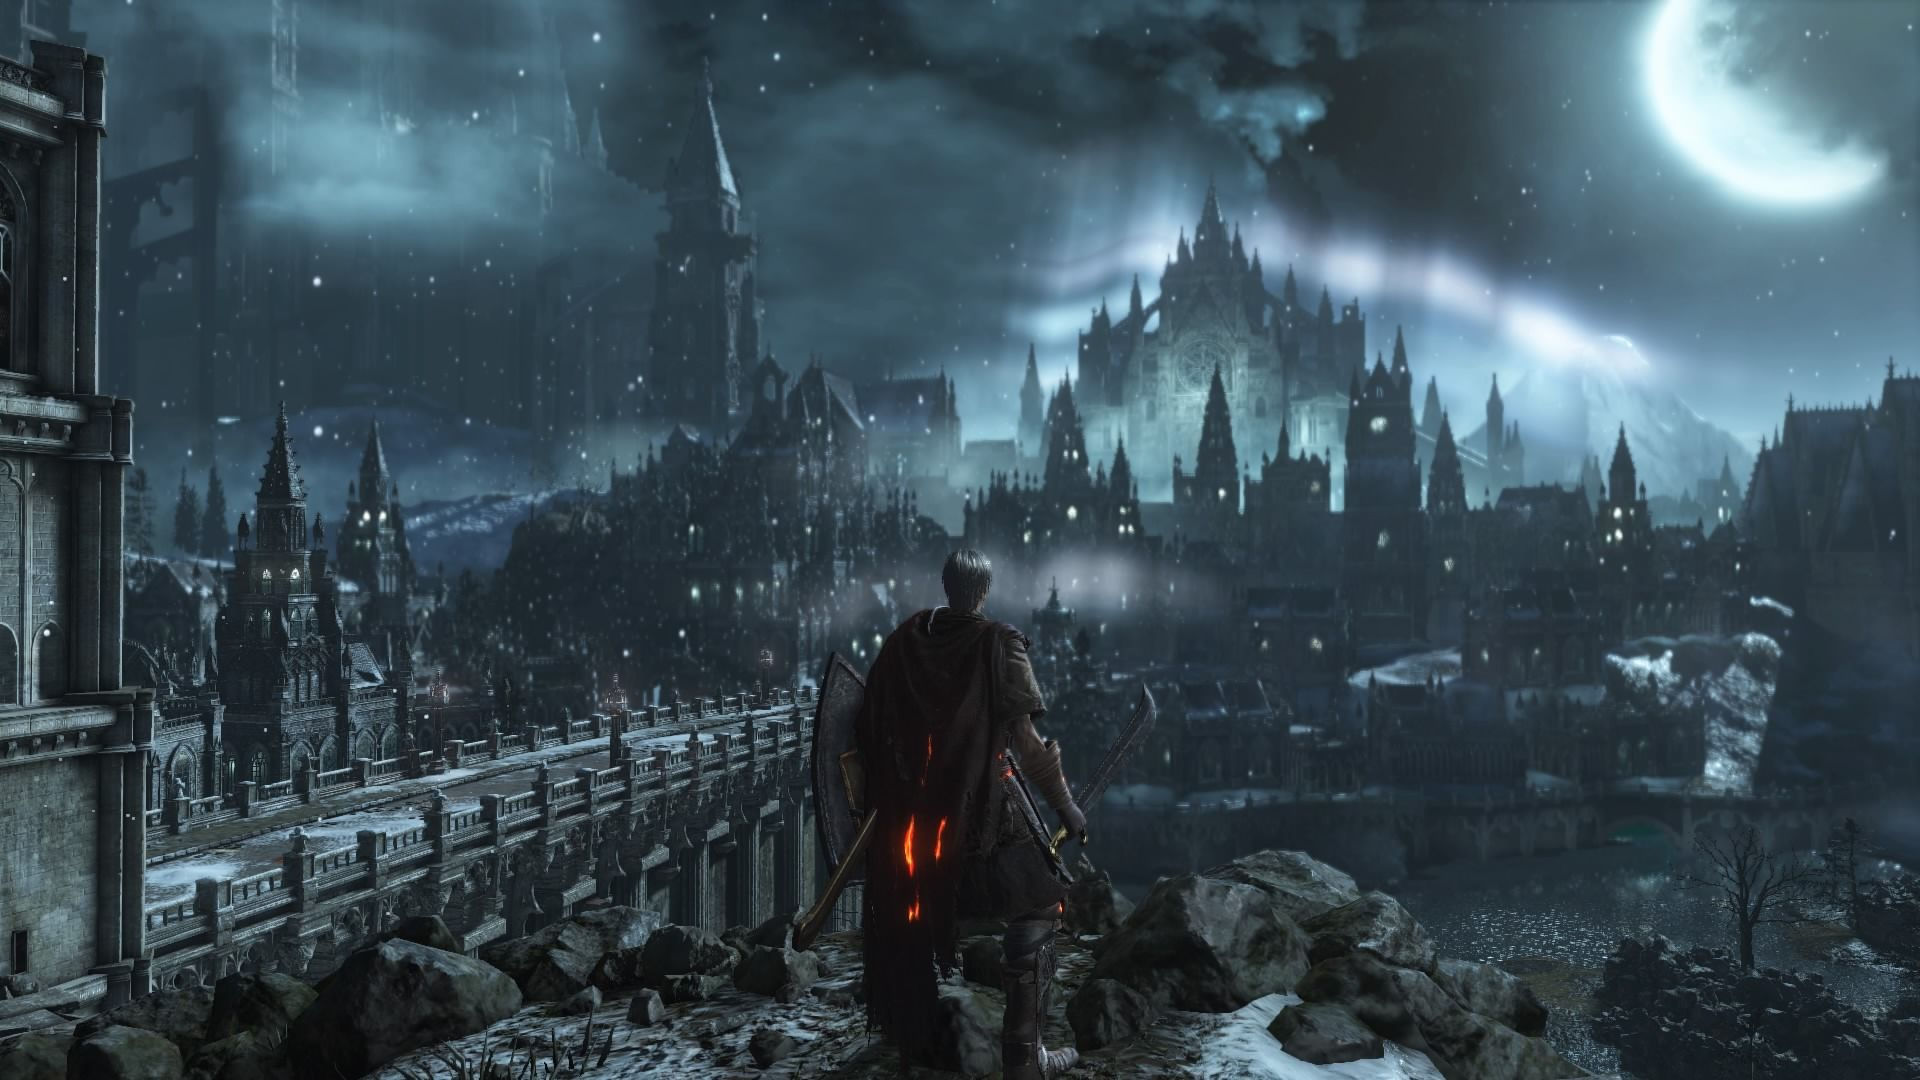 Exceptionnel Wallpapers Dark Souls 3 - MaximumWallHD GJ71